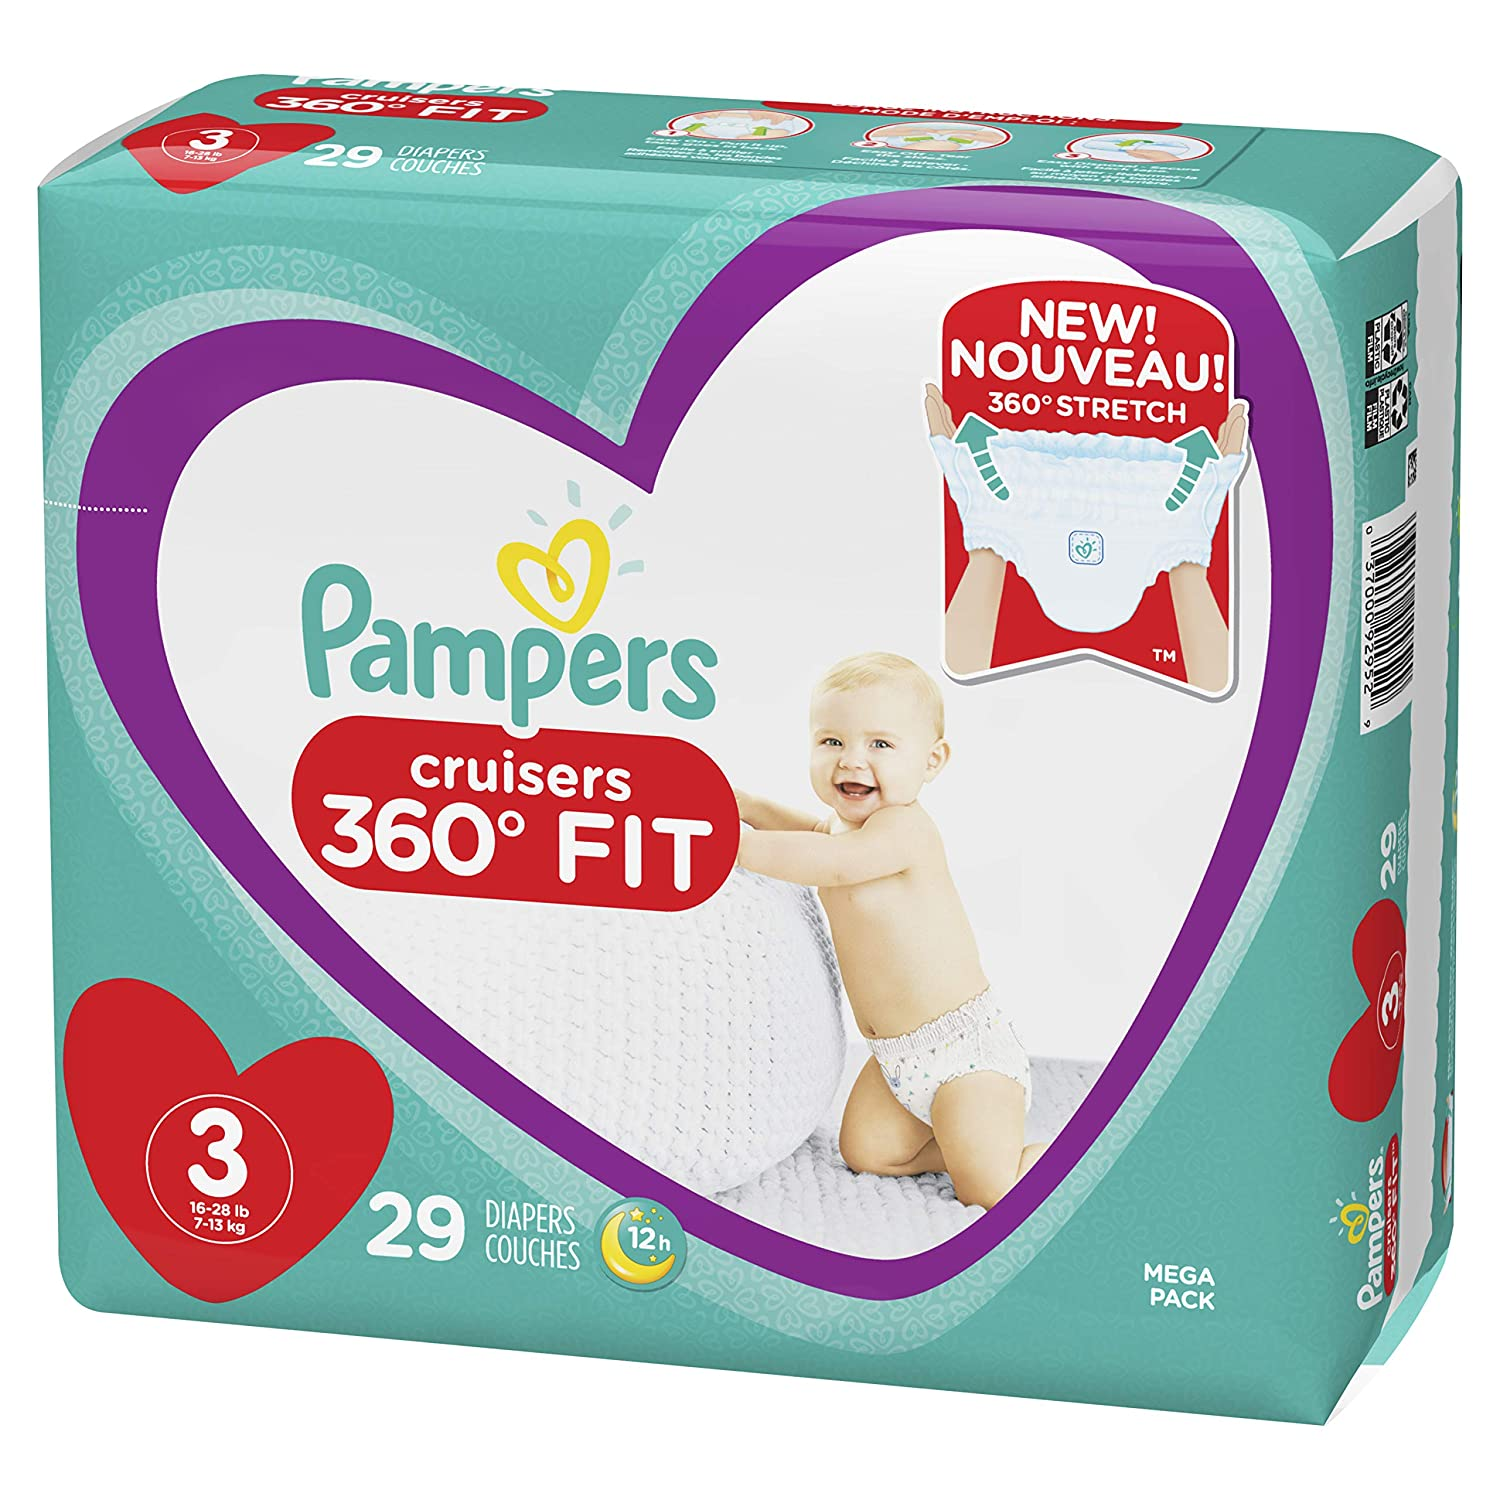 Pampers Cruisers 360˚ Fit Diapers Size 3 29 Count